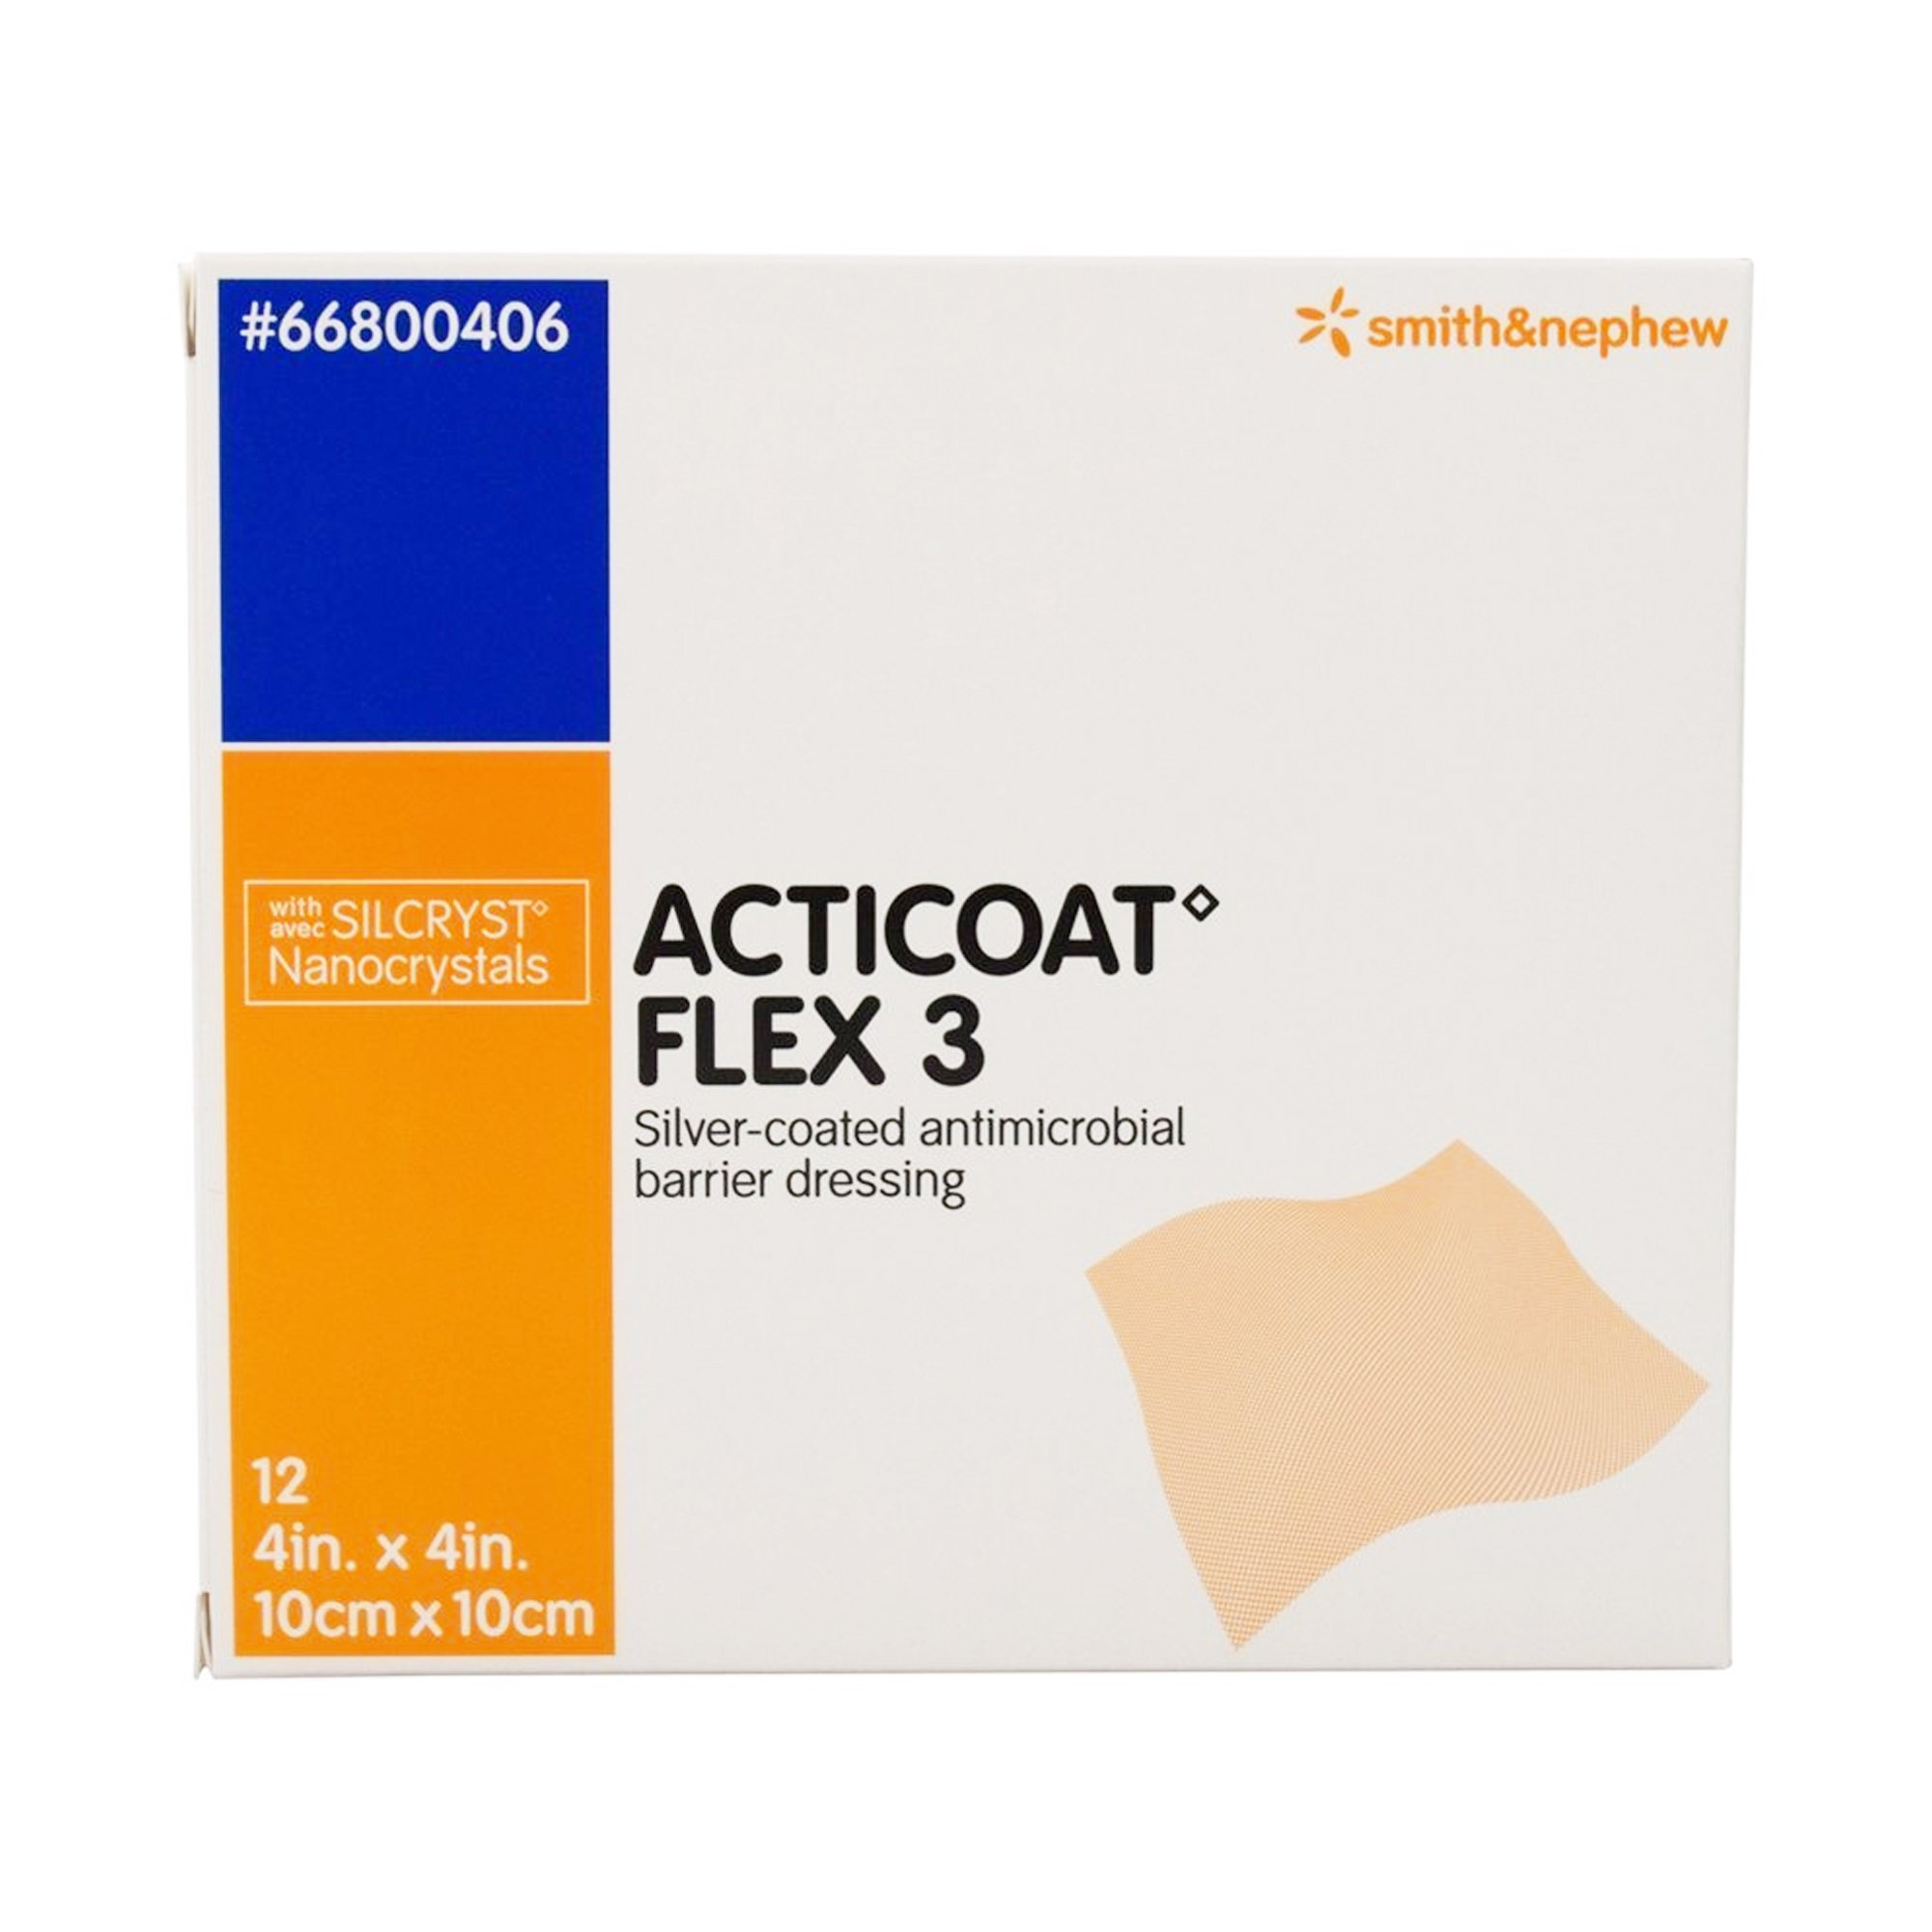 """Acticoat Flex 3 Silver-coated Antimicrobial Barrier Dressing, 4 X 4"""", 66800406, Box of 12"""